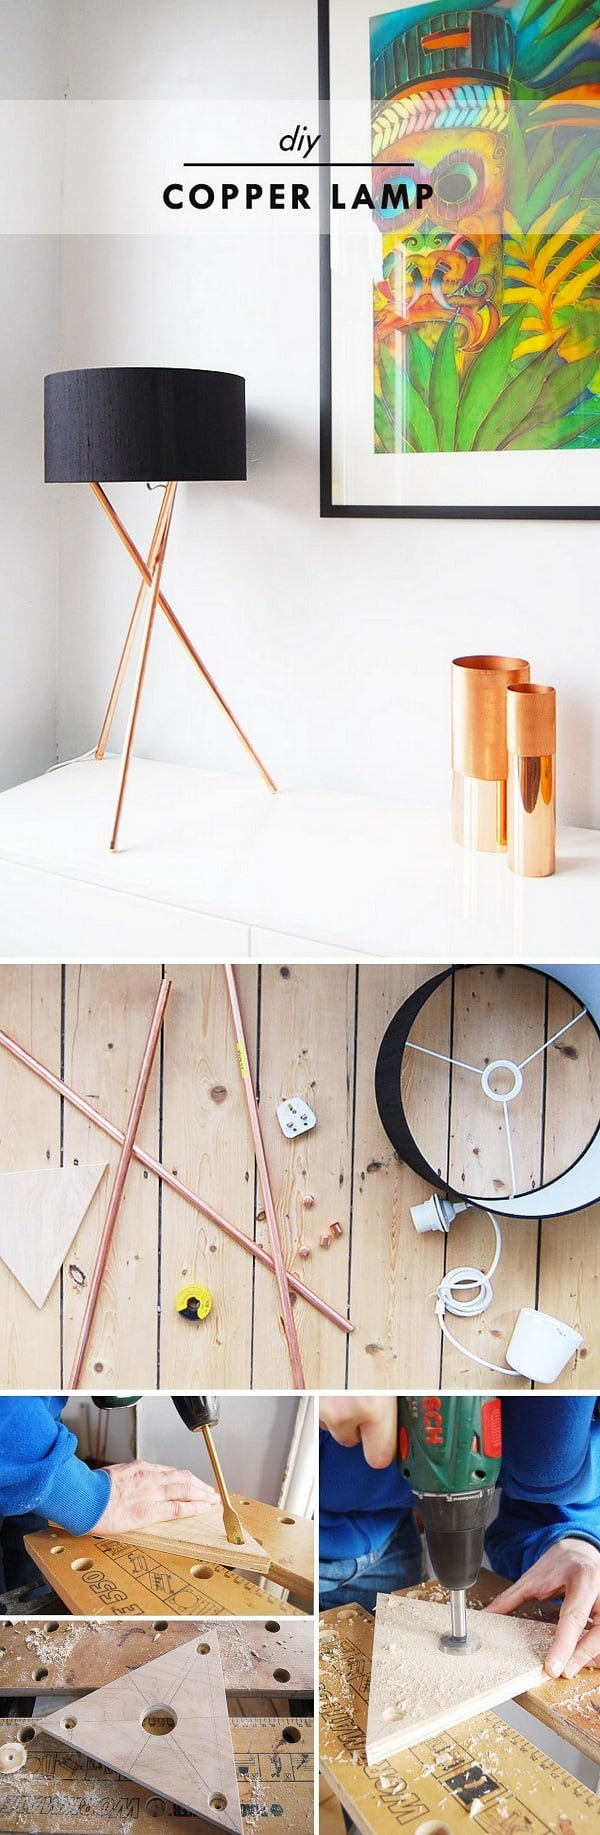 16 Trendy DIY Ideas to Decorate with Copper - Check out the tutorial for an easy to make #DIY #copper lamp #homedecor